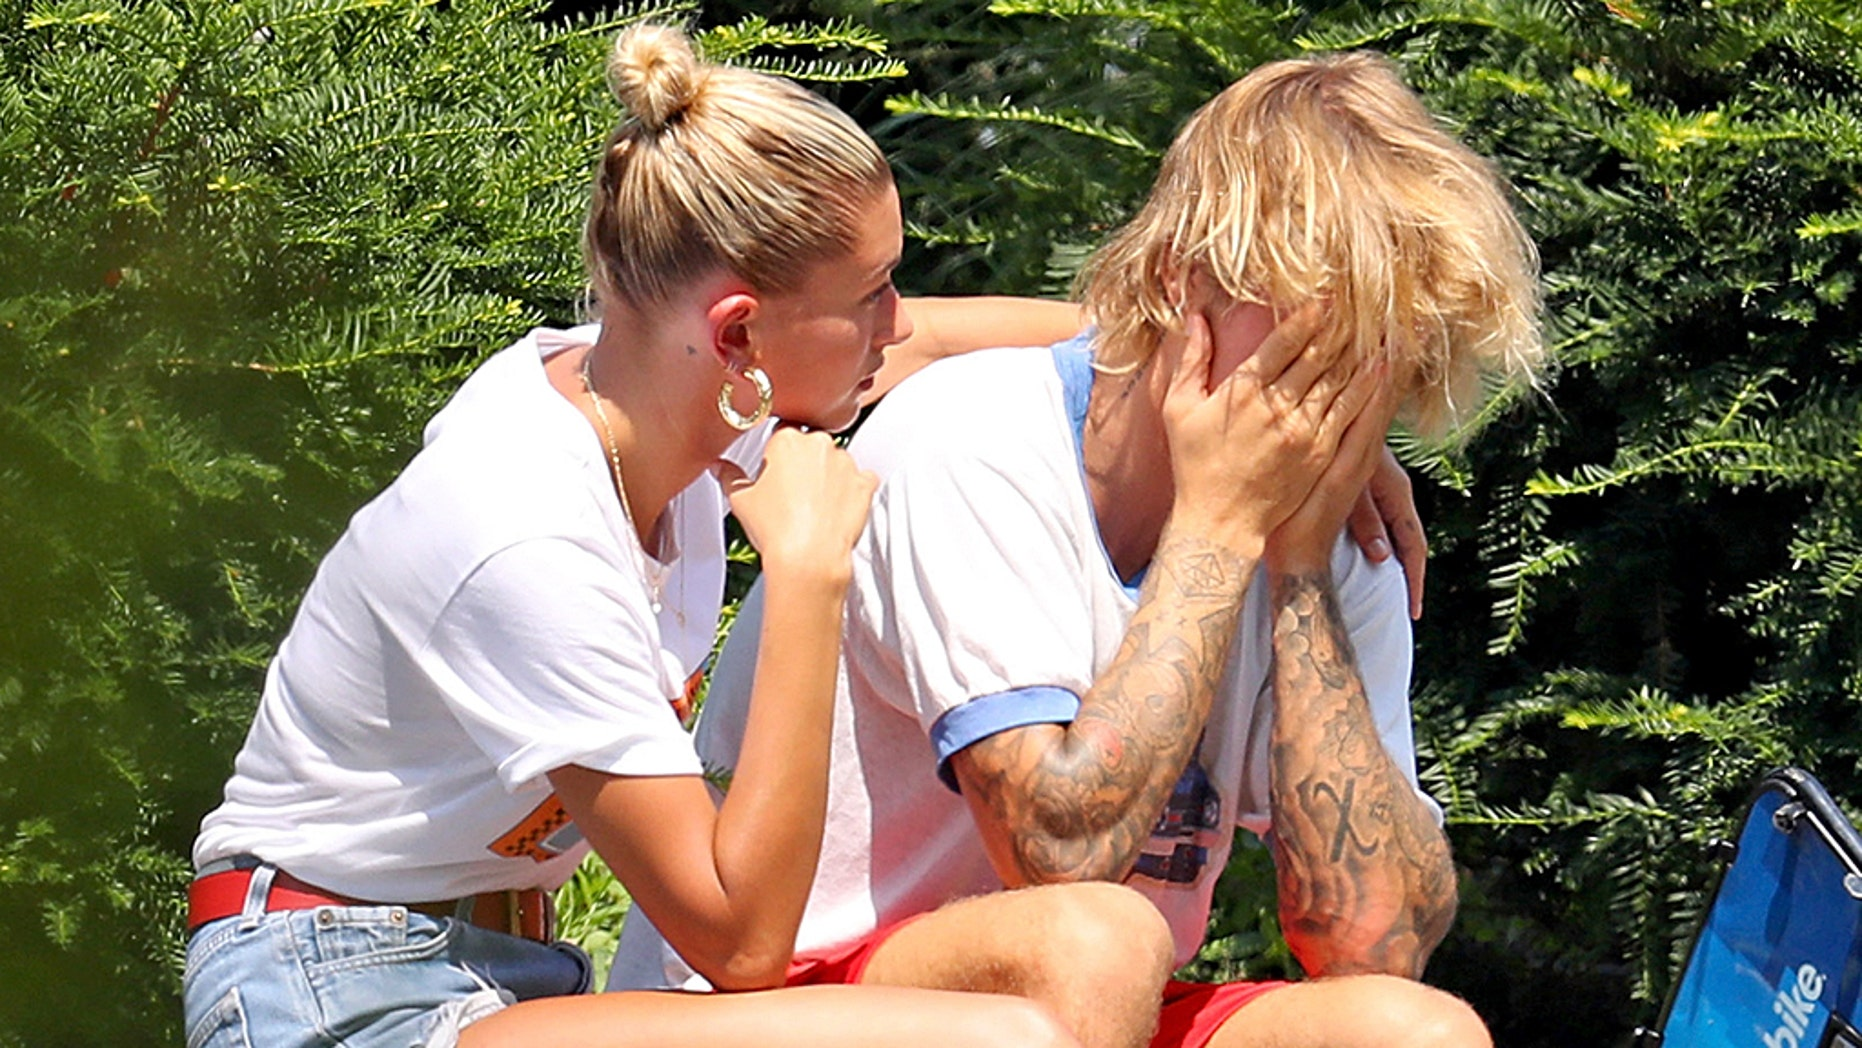 Justin Bieber was photographed looking upset and crying during a bike ride in New York City with his fiancée Hailey Baldwin on Tuesday.